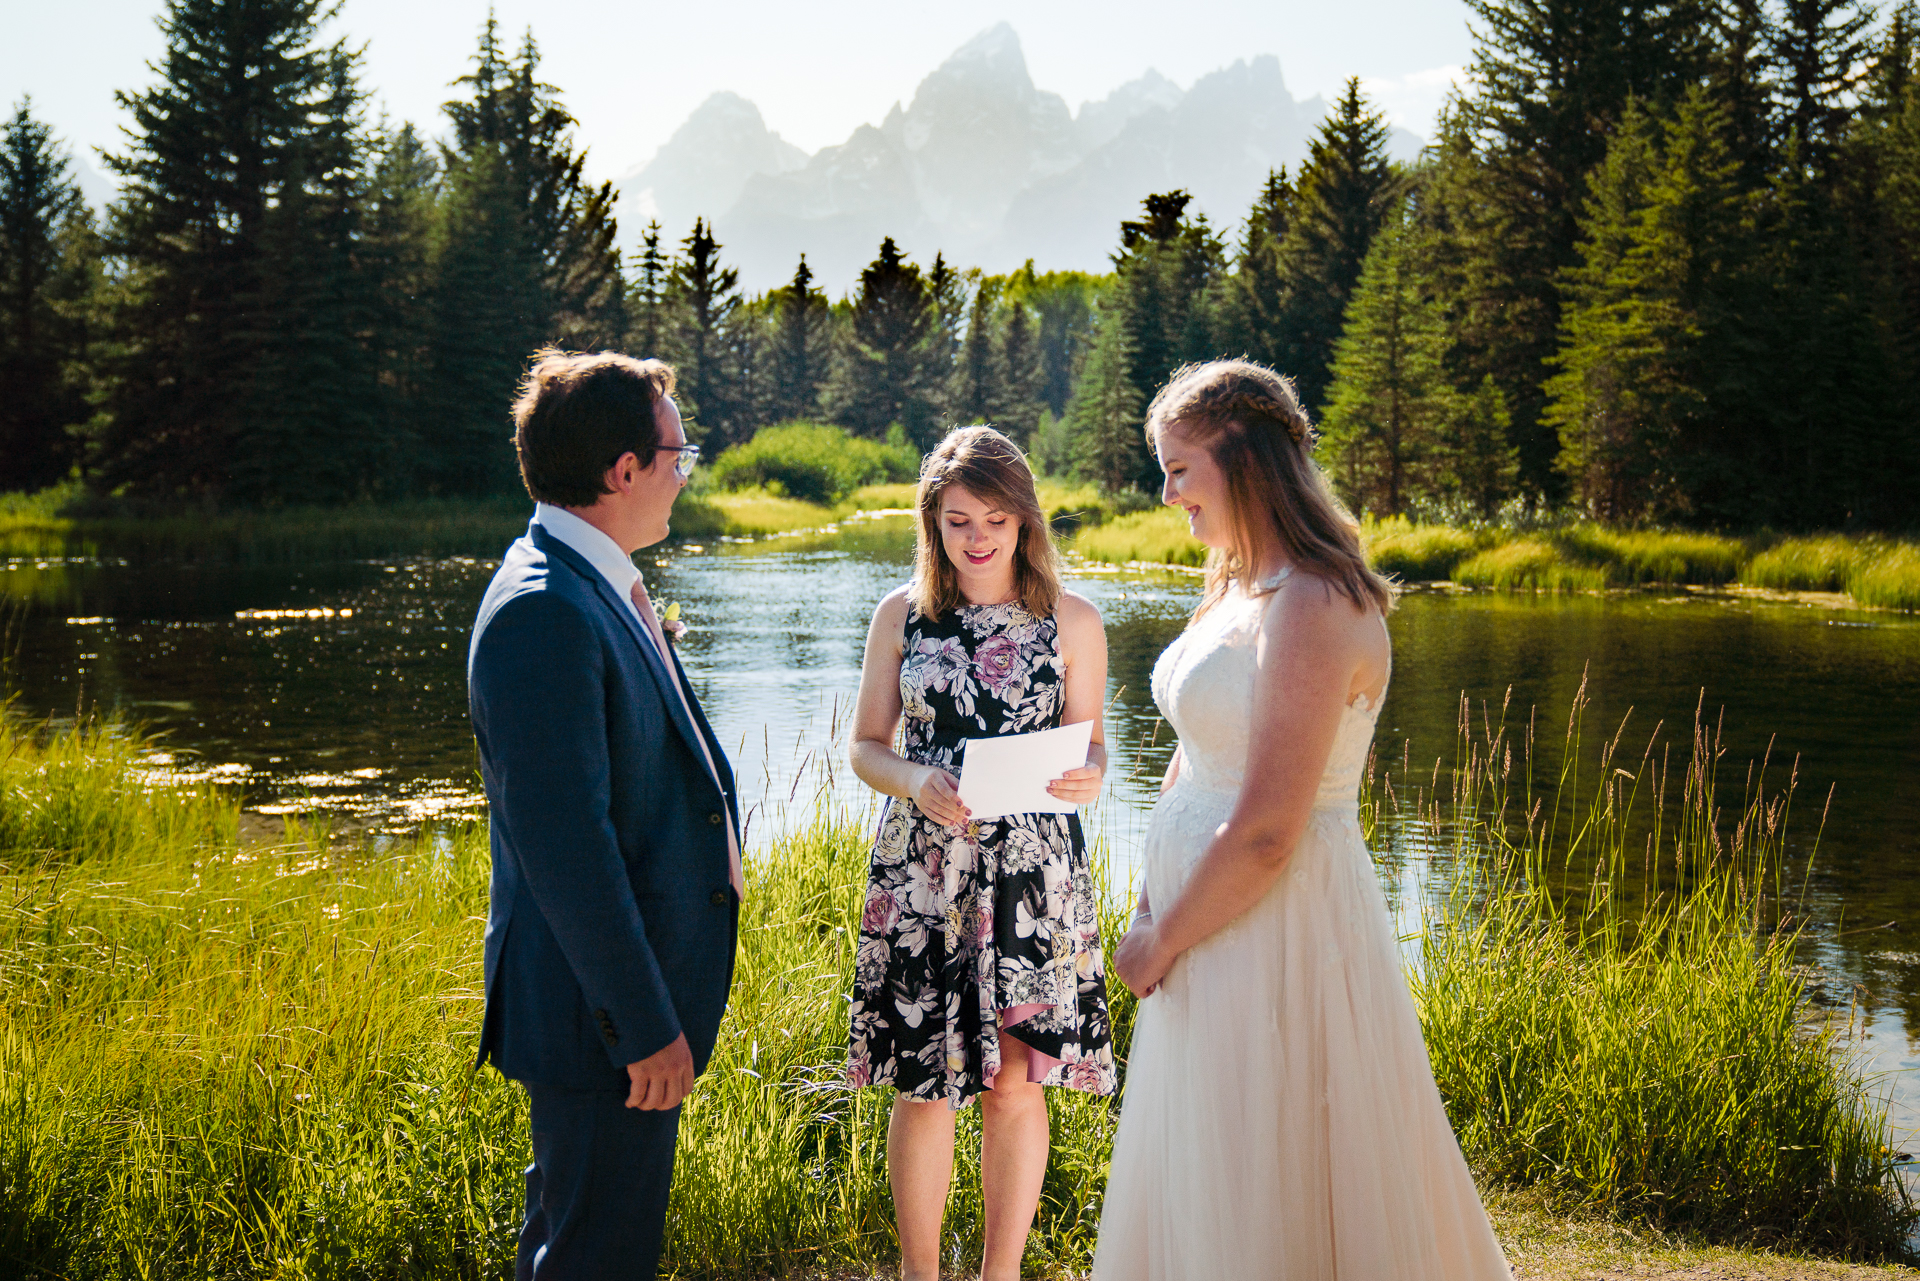 Schwabachers Landing in Grand Teton National Park Wyoming Elopement Ceremony Photo | The bride and groom's ceremony taking place outdoors in the sunshine